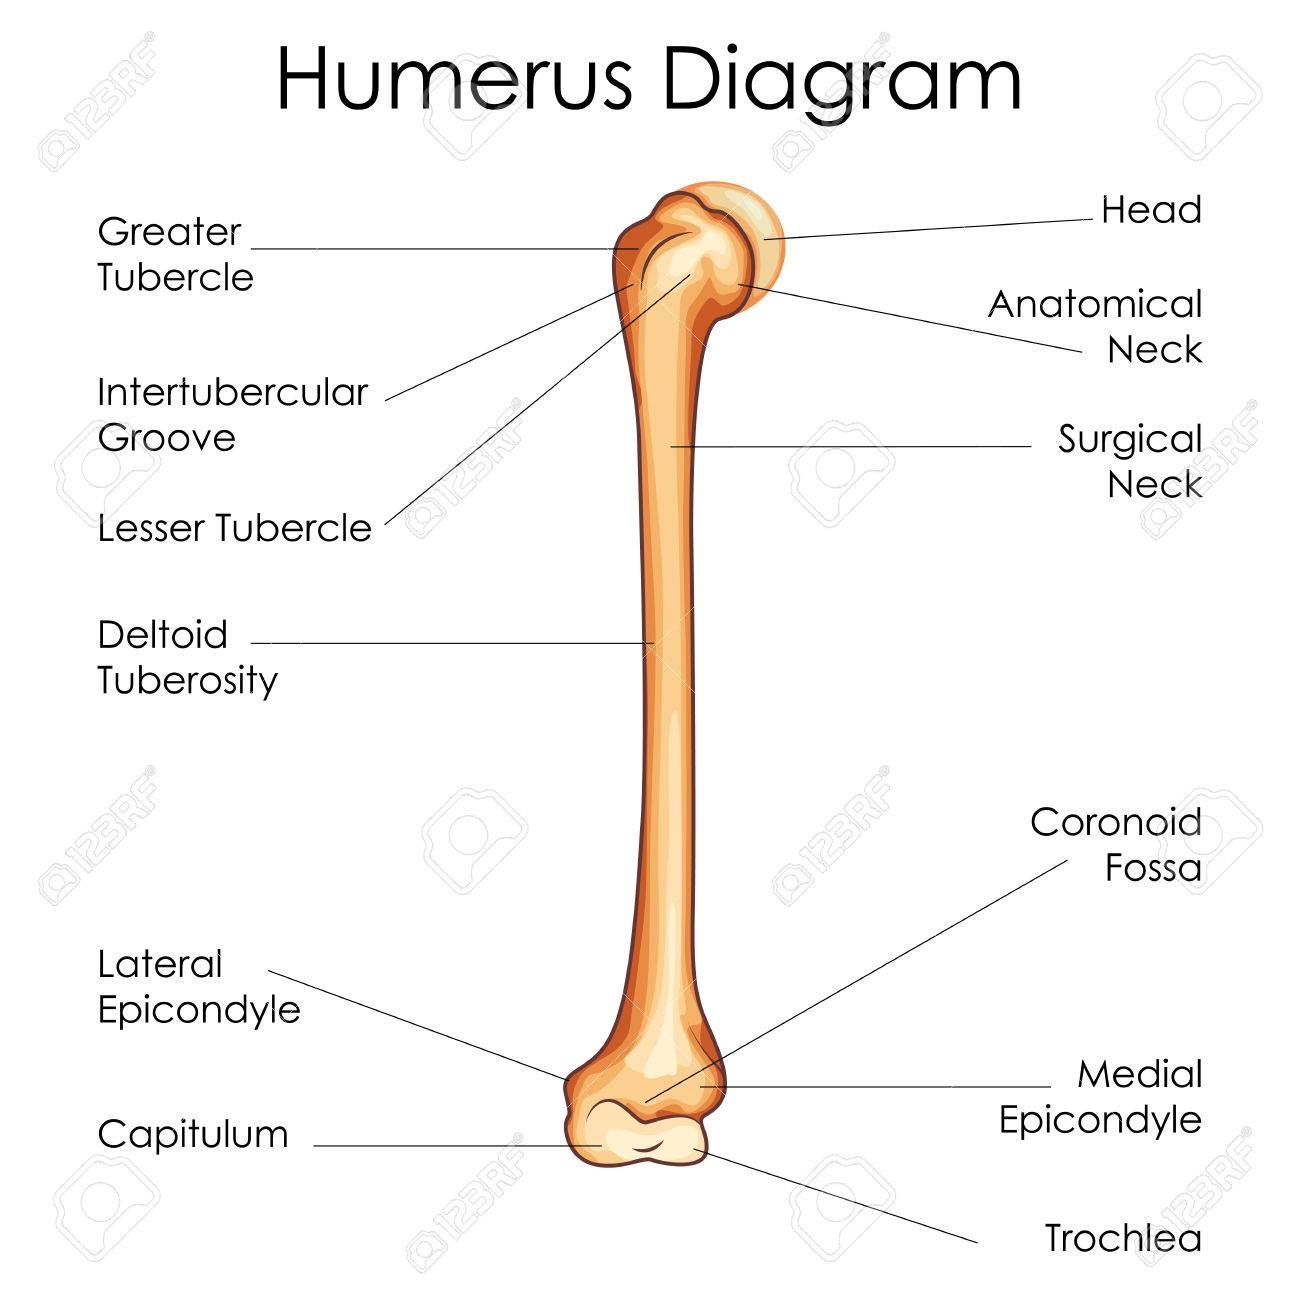 medical education chart of biology for humerus diagram. vector